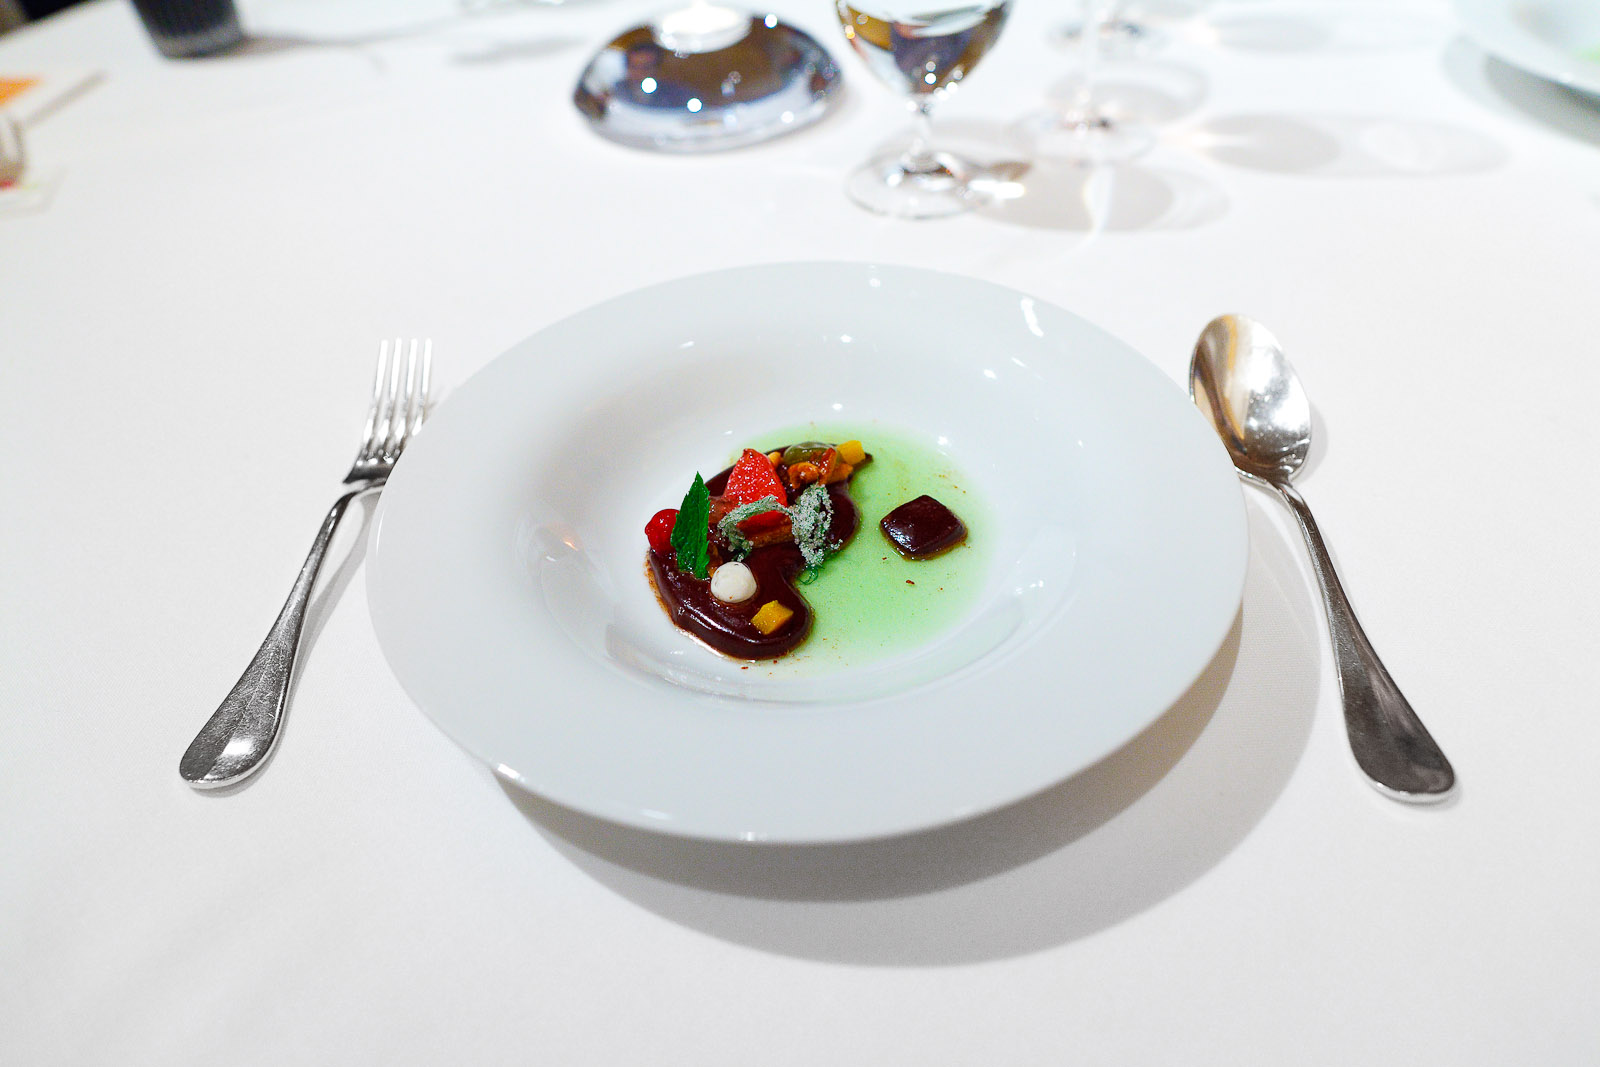 12th Course: Black chocolate, mint, coconut, fruit, nuts, peppers